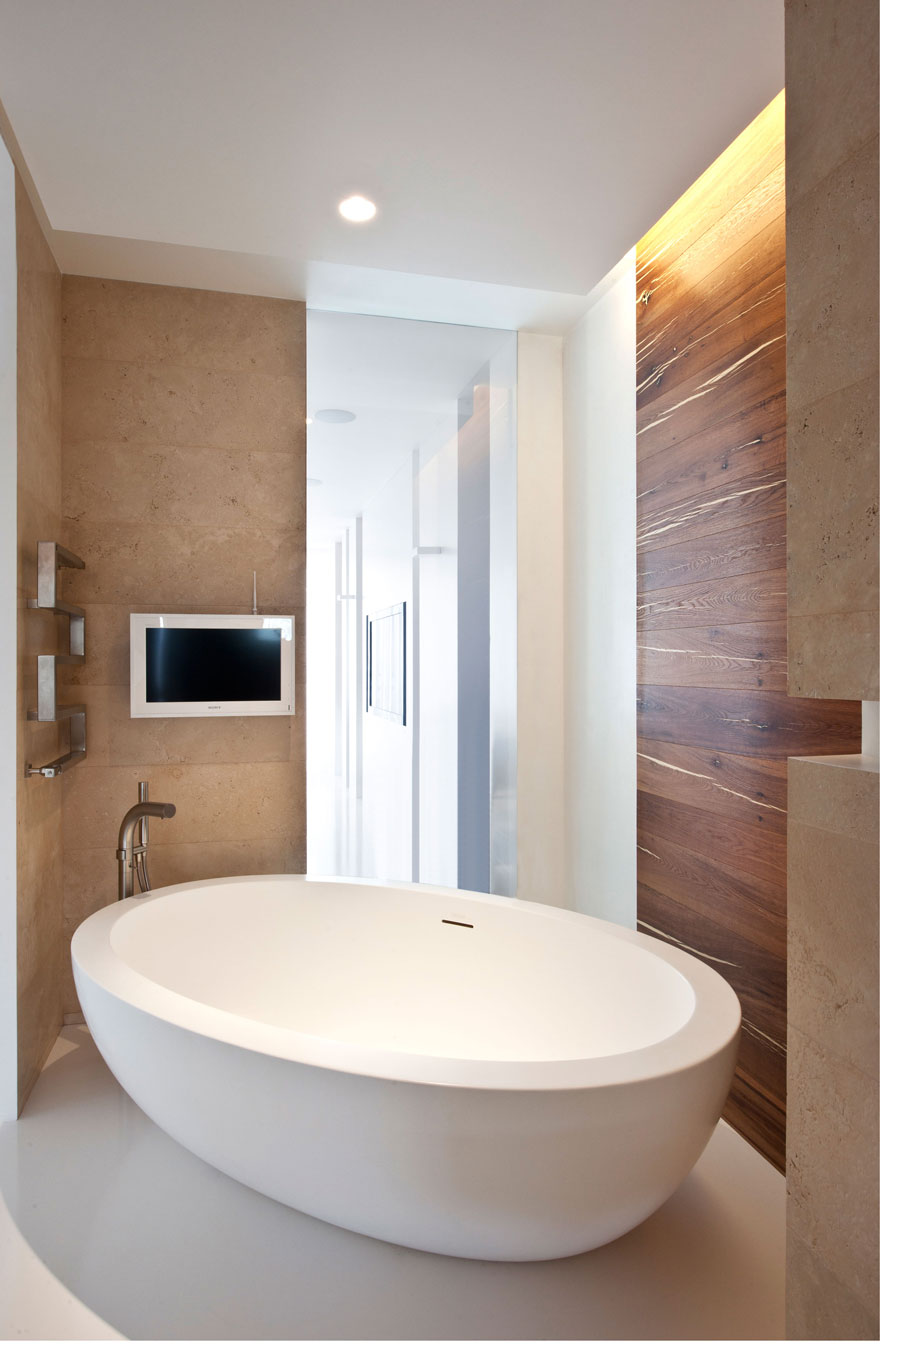 Freestanding Contemporary Bathtubs Soaking Bathtub Modern Bathtub